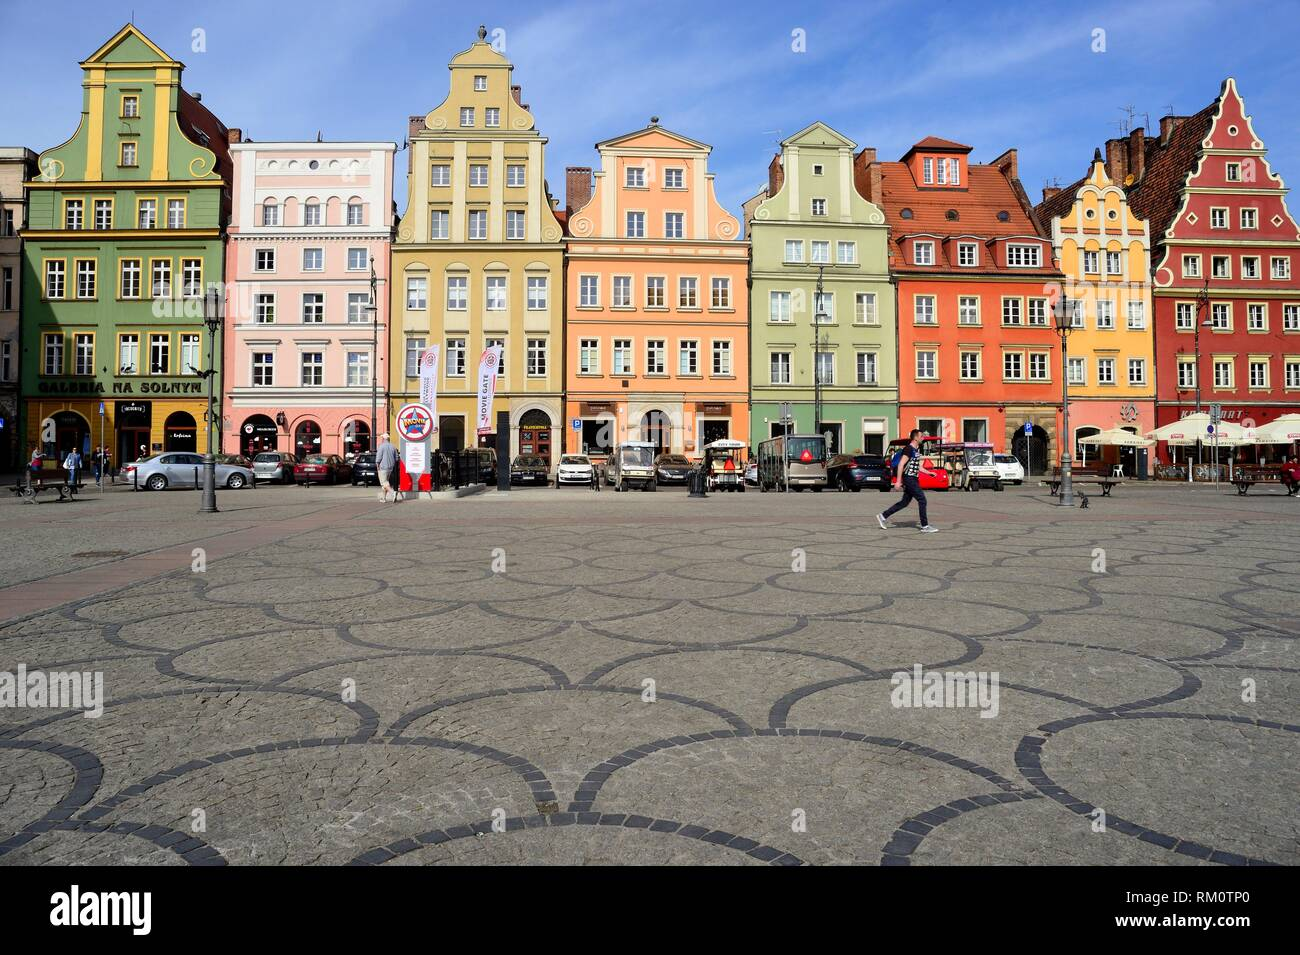 Salt square (Plac Solny) in Wroclaw or Breslau, Poland. - Stock Image